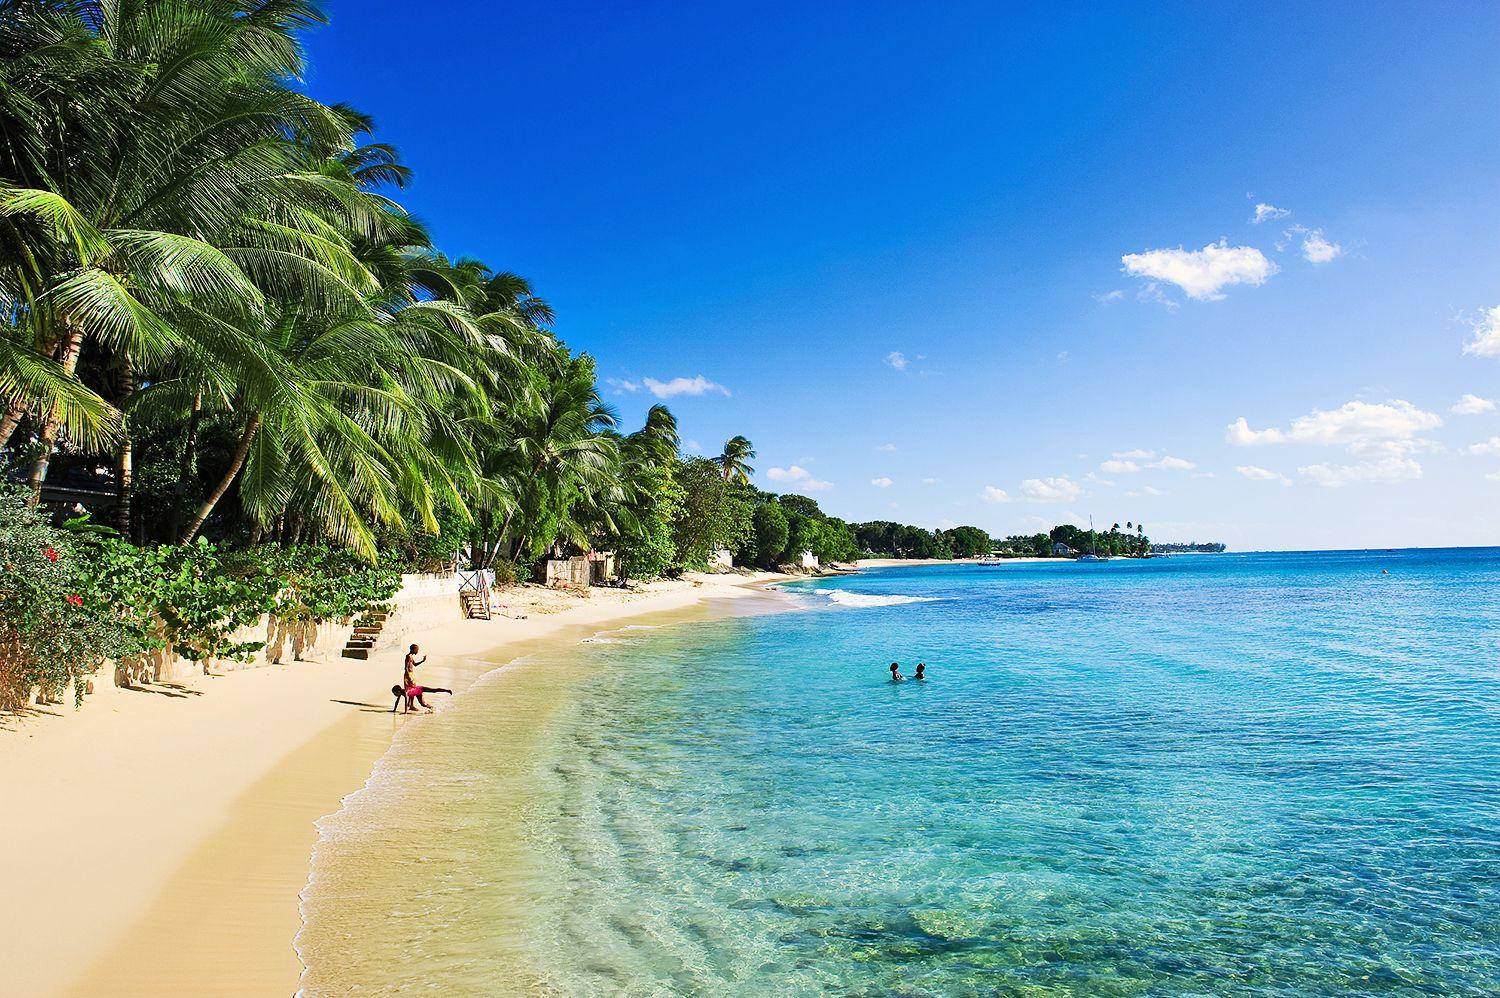 Barbados Wallpapers | Travel Wallpapers Gallery - PC ...